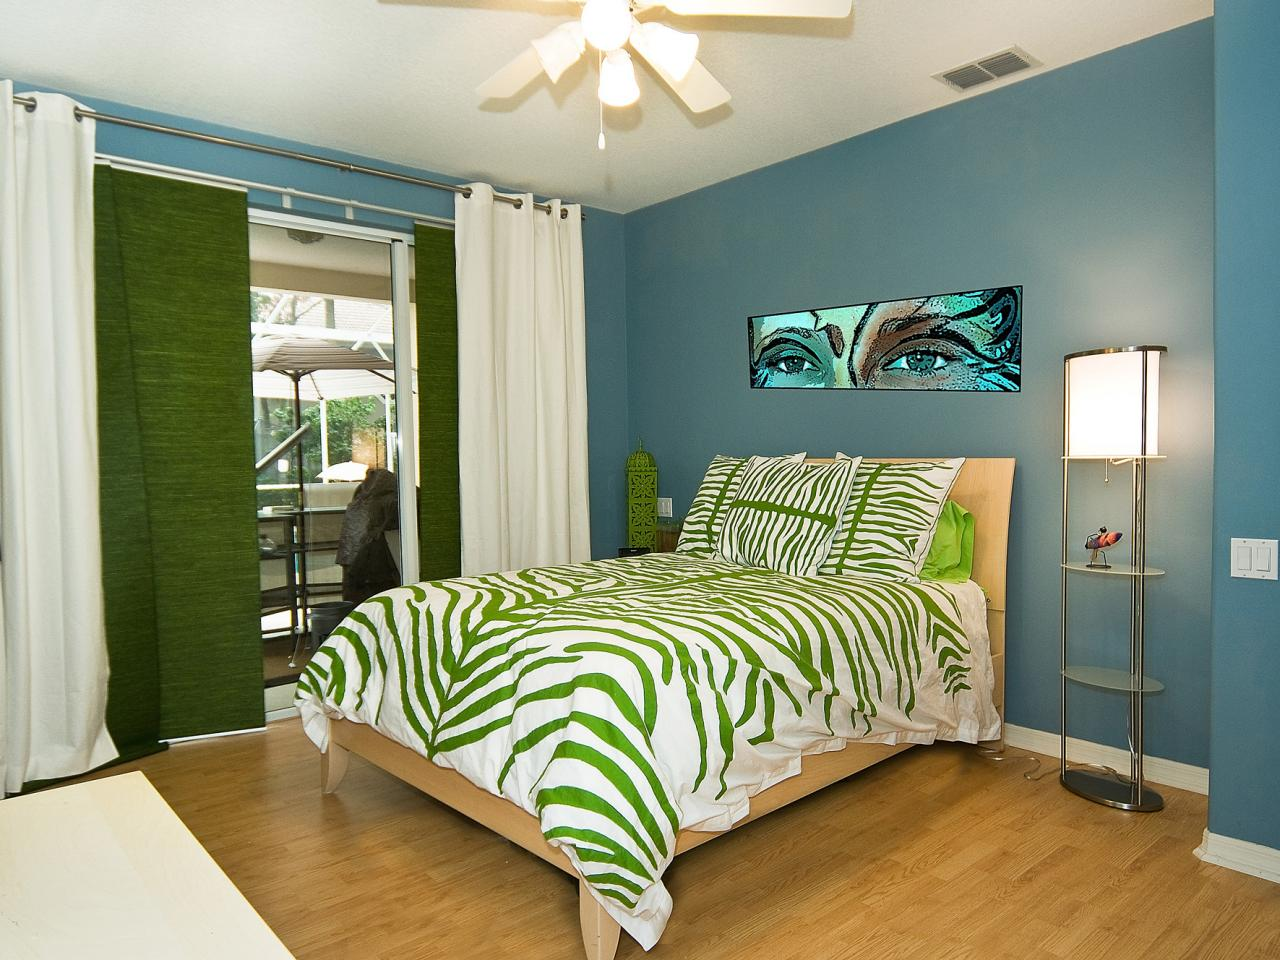 Sassy and sophisticated teen and tween bedroom ideas for Bedroom rooms ideas